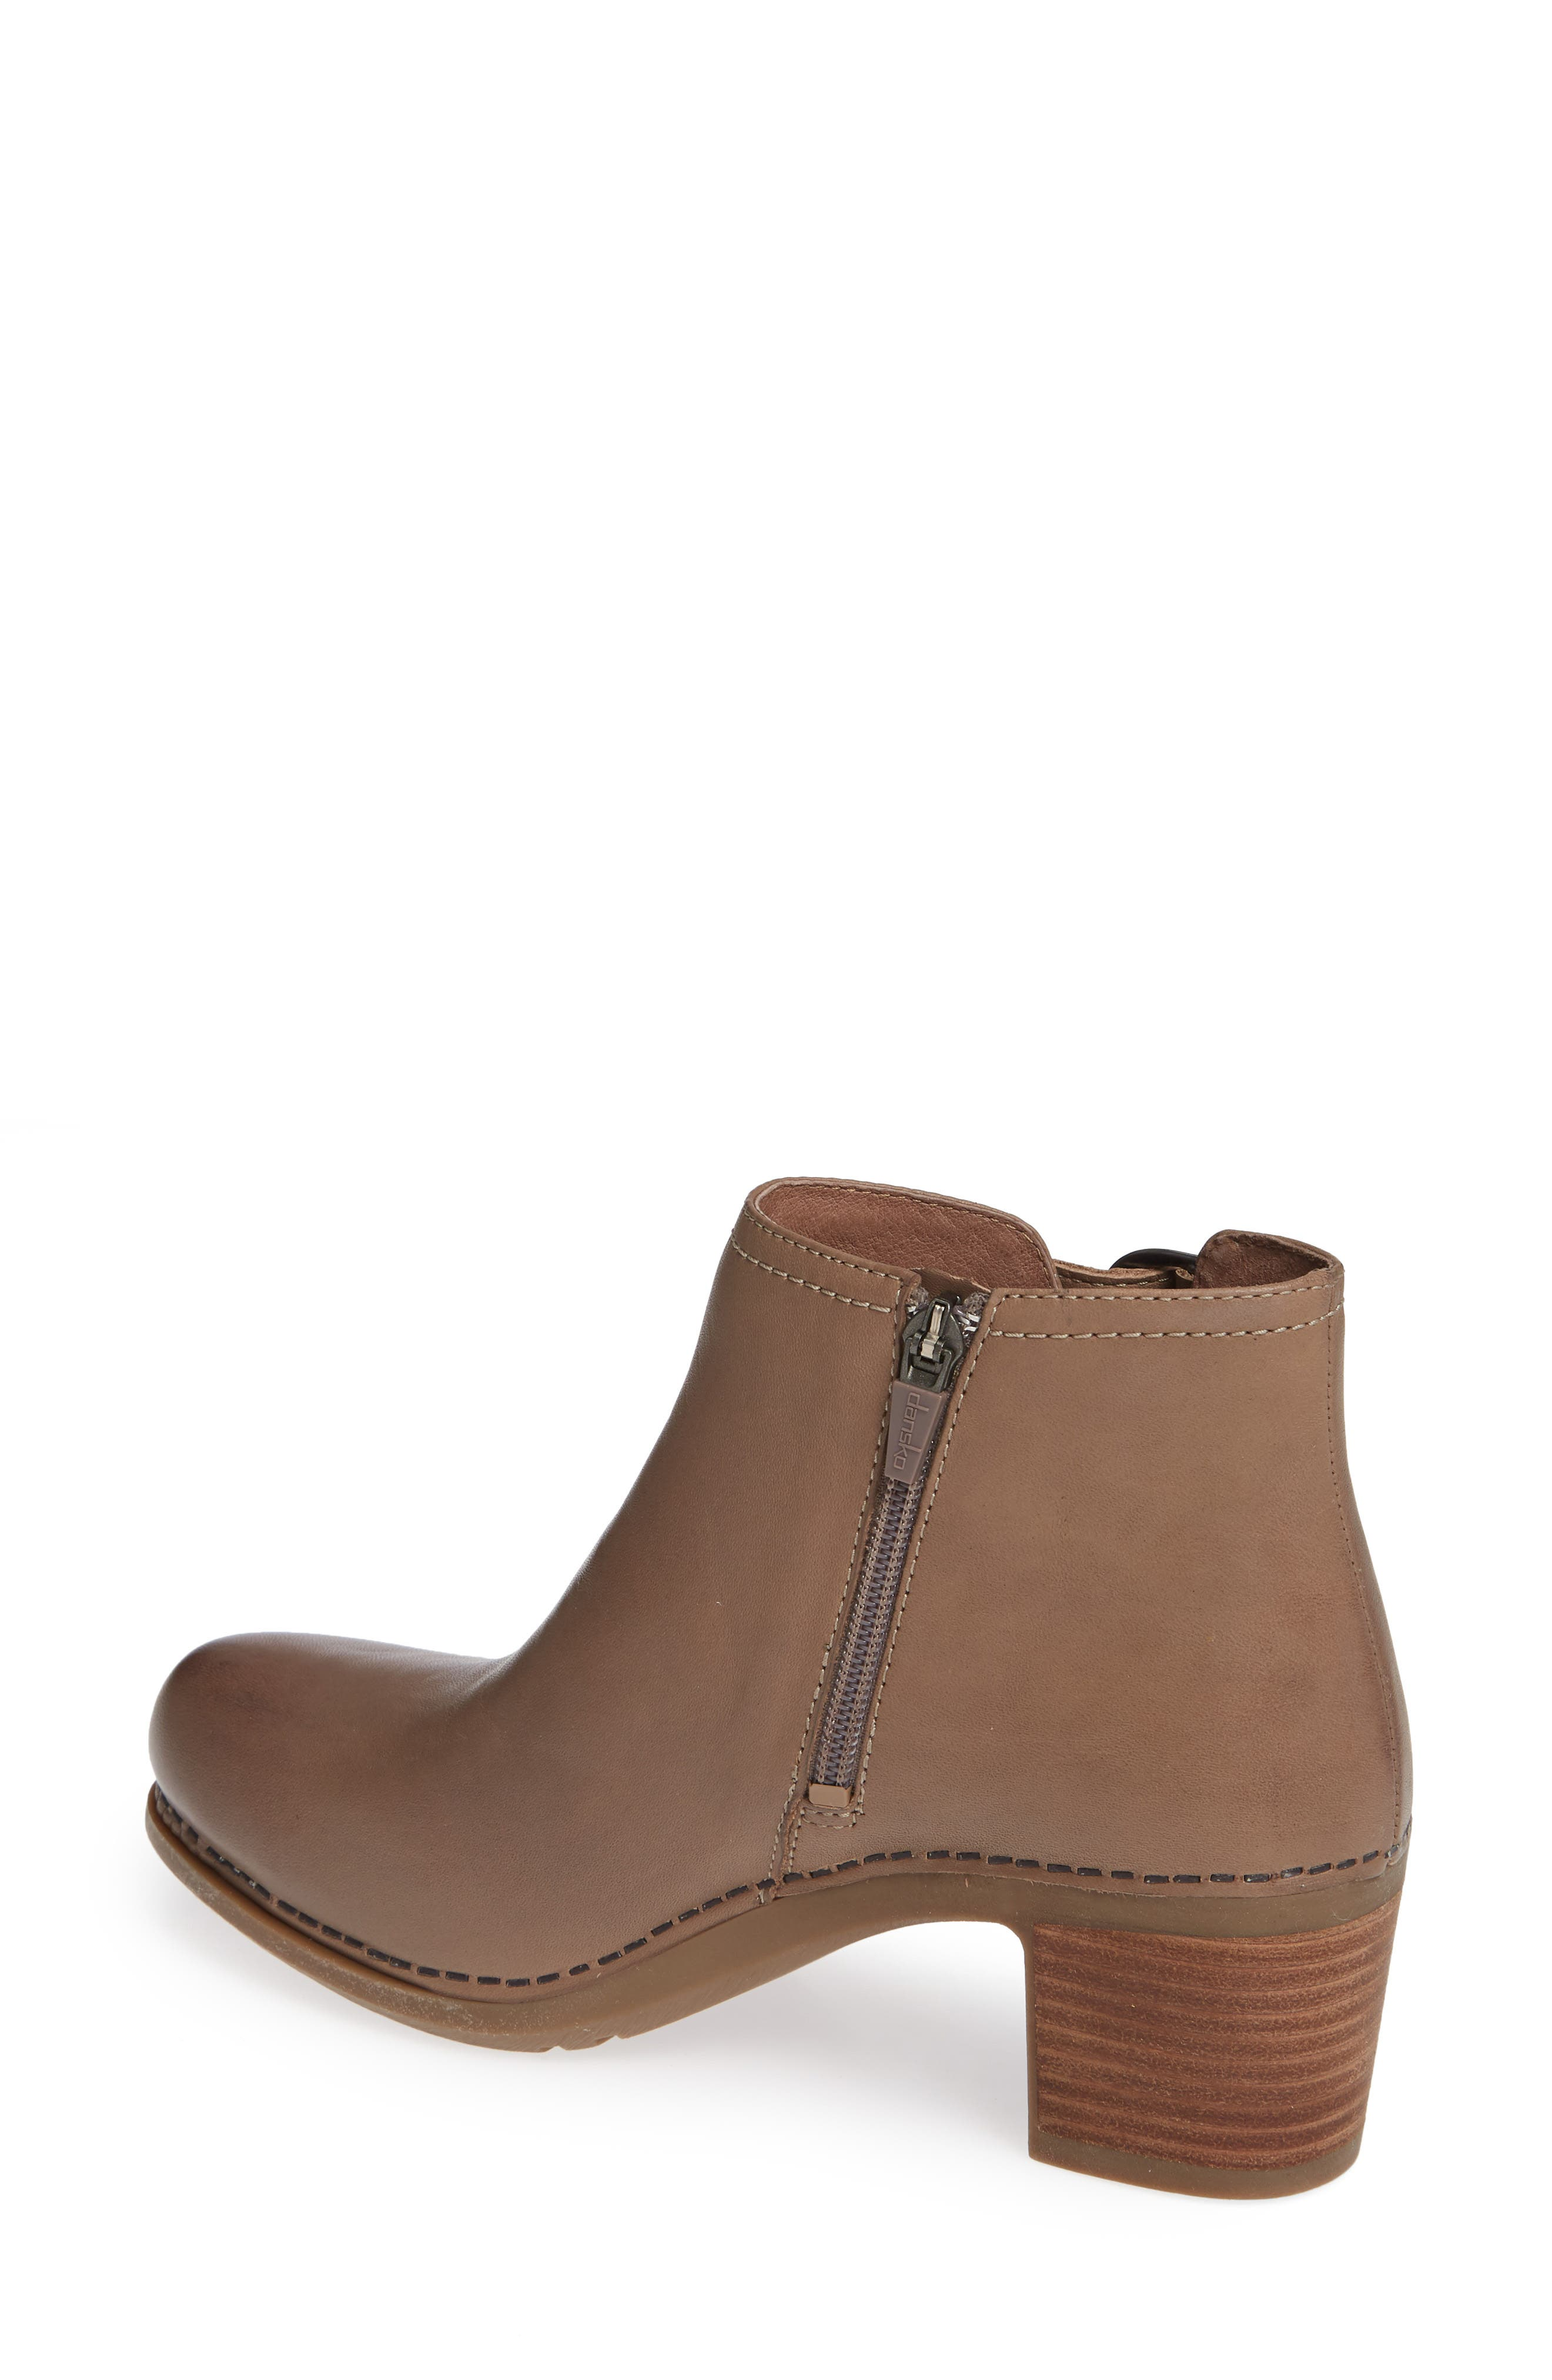 Henley Bootie,                             Alternate thumbnail 2, color,                             TAUPE LEATHER